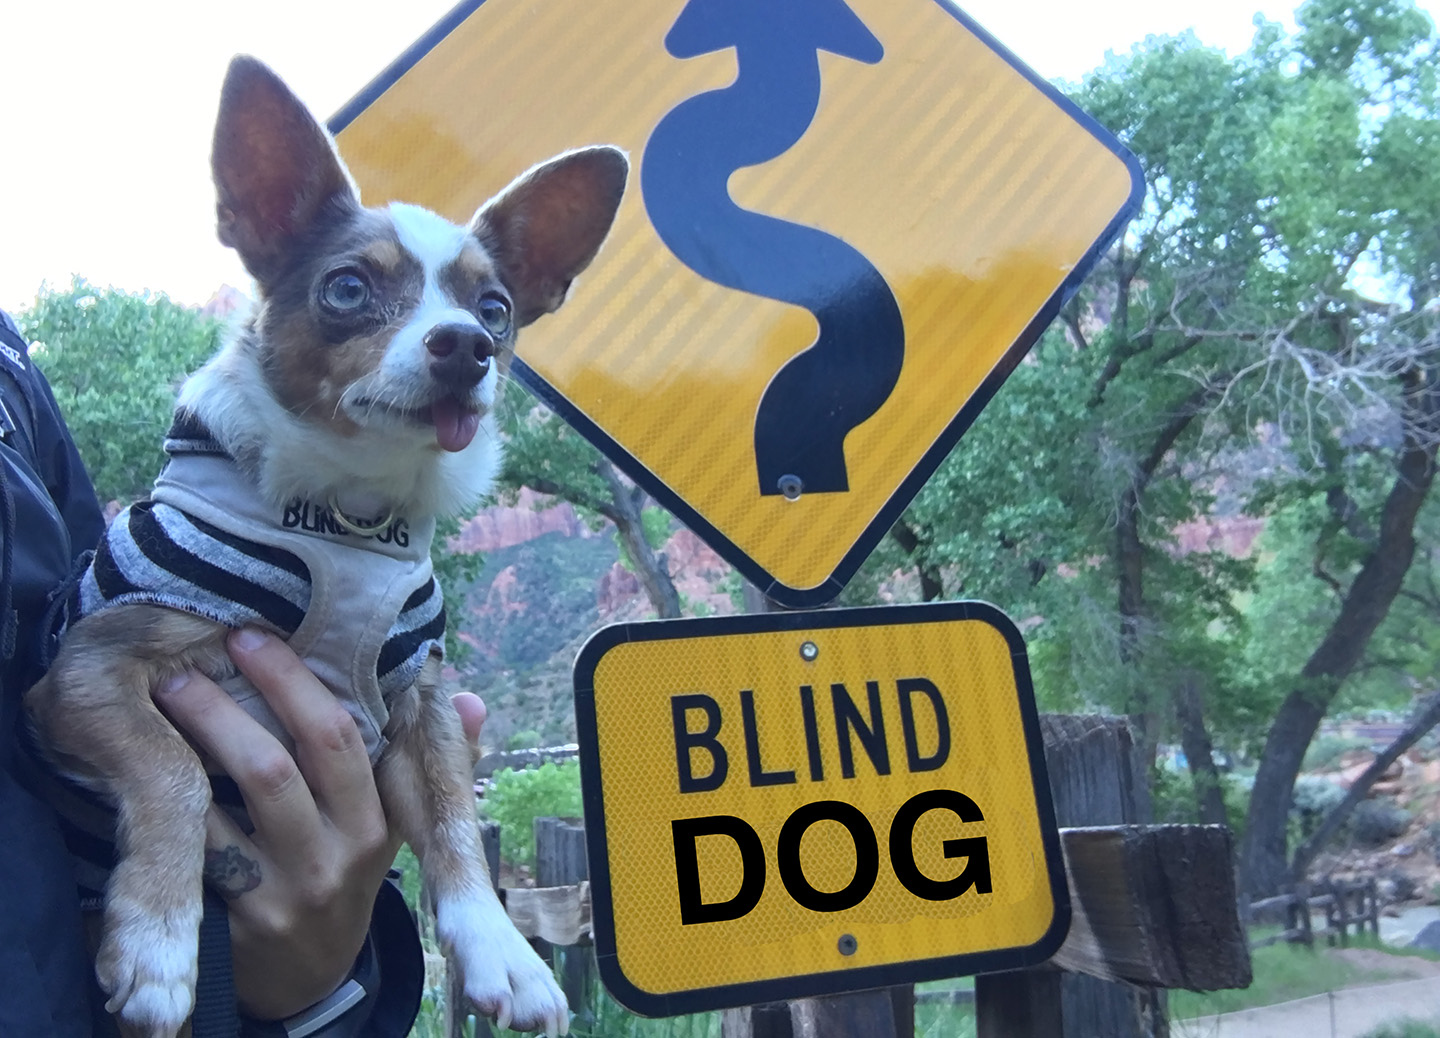 Blind dog Stimpy